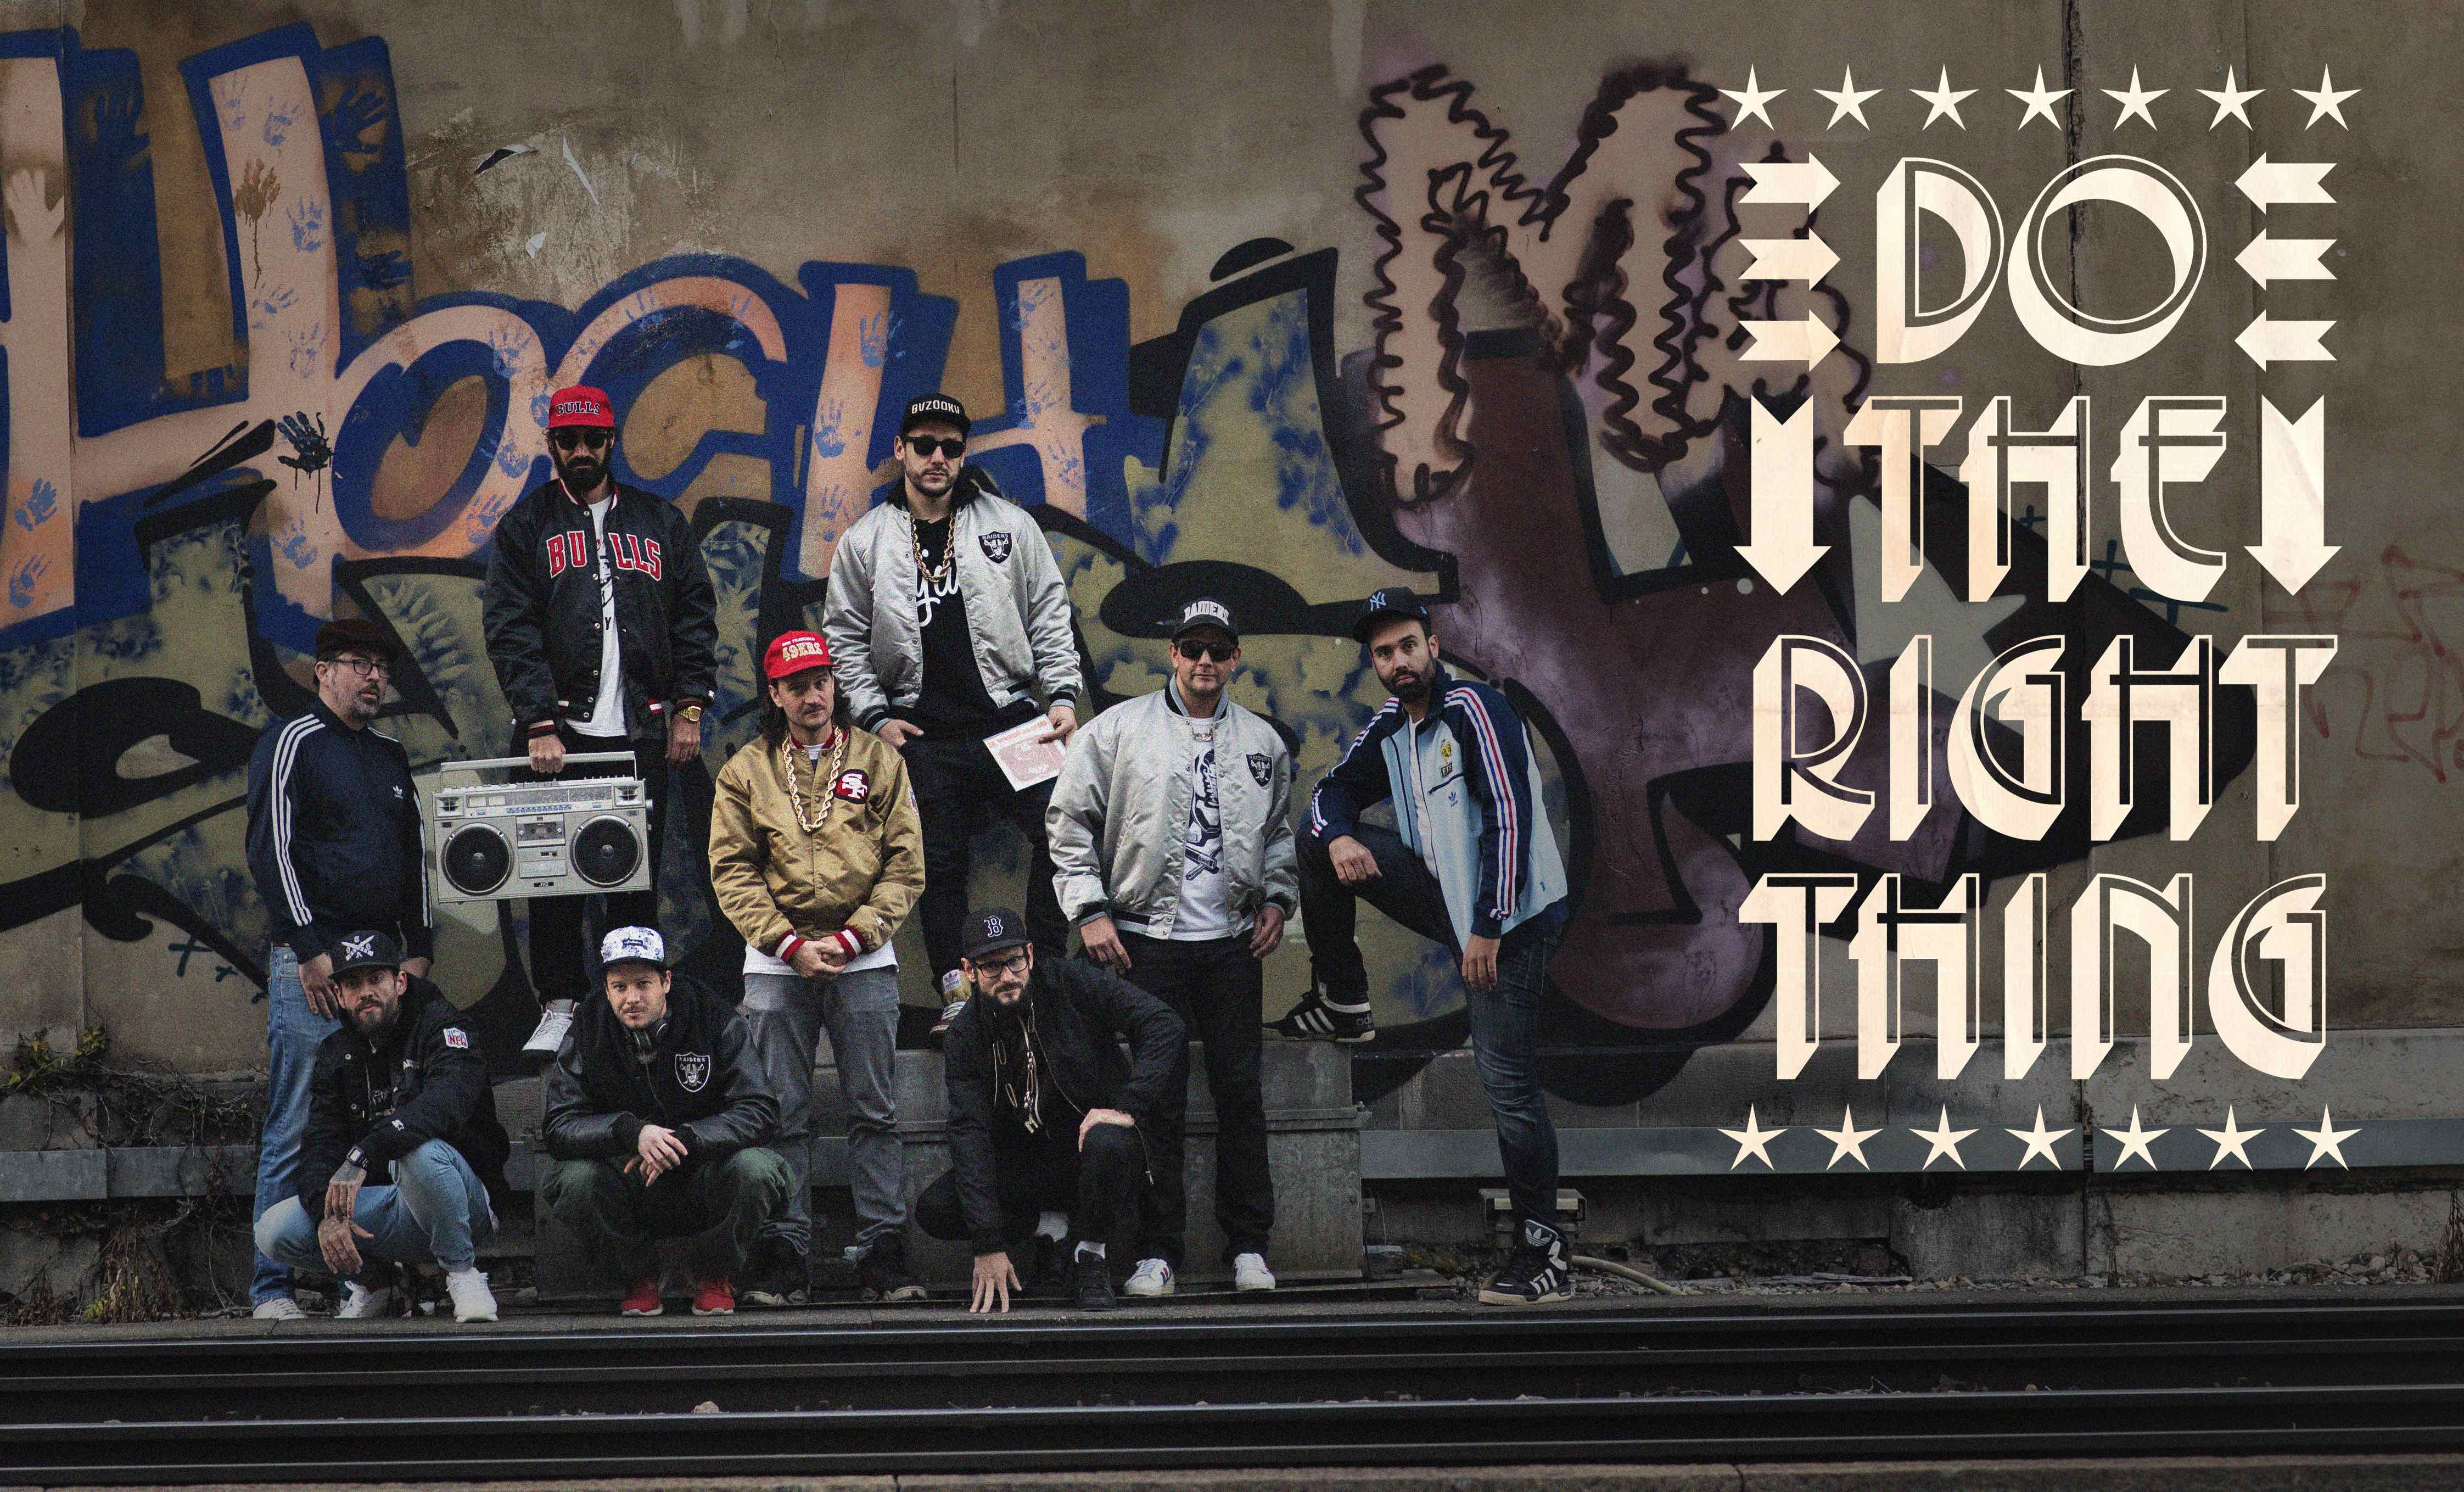 Do-The-Right-Thing-Posse 01.2